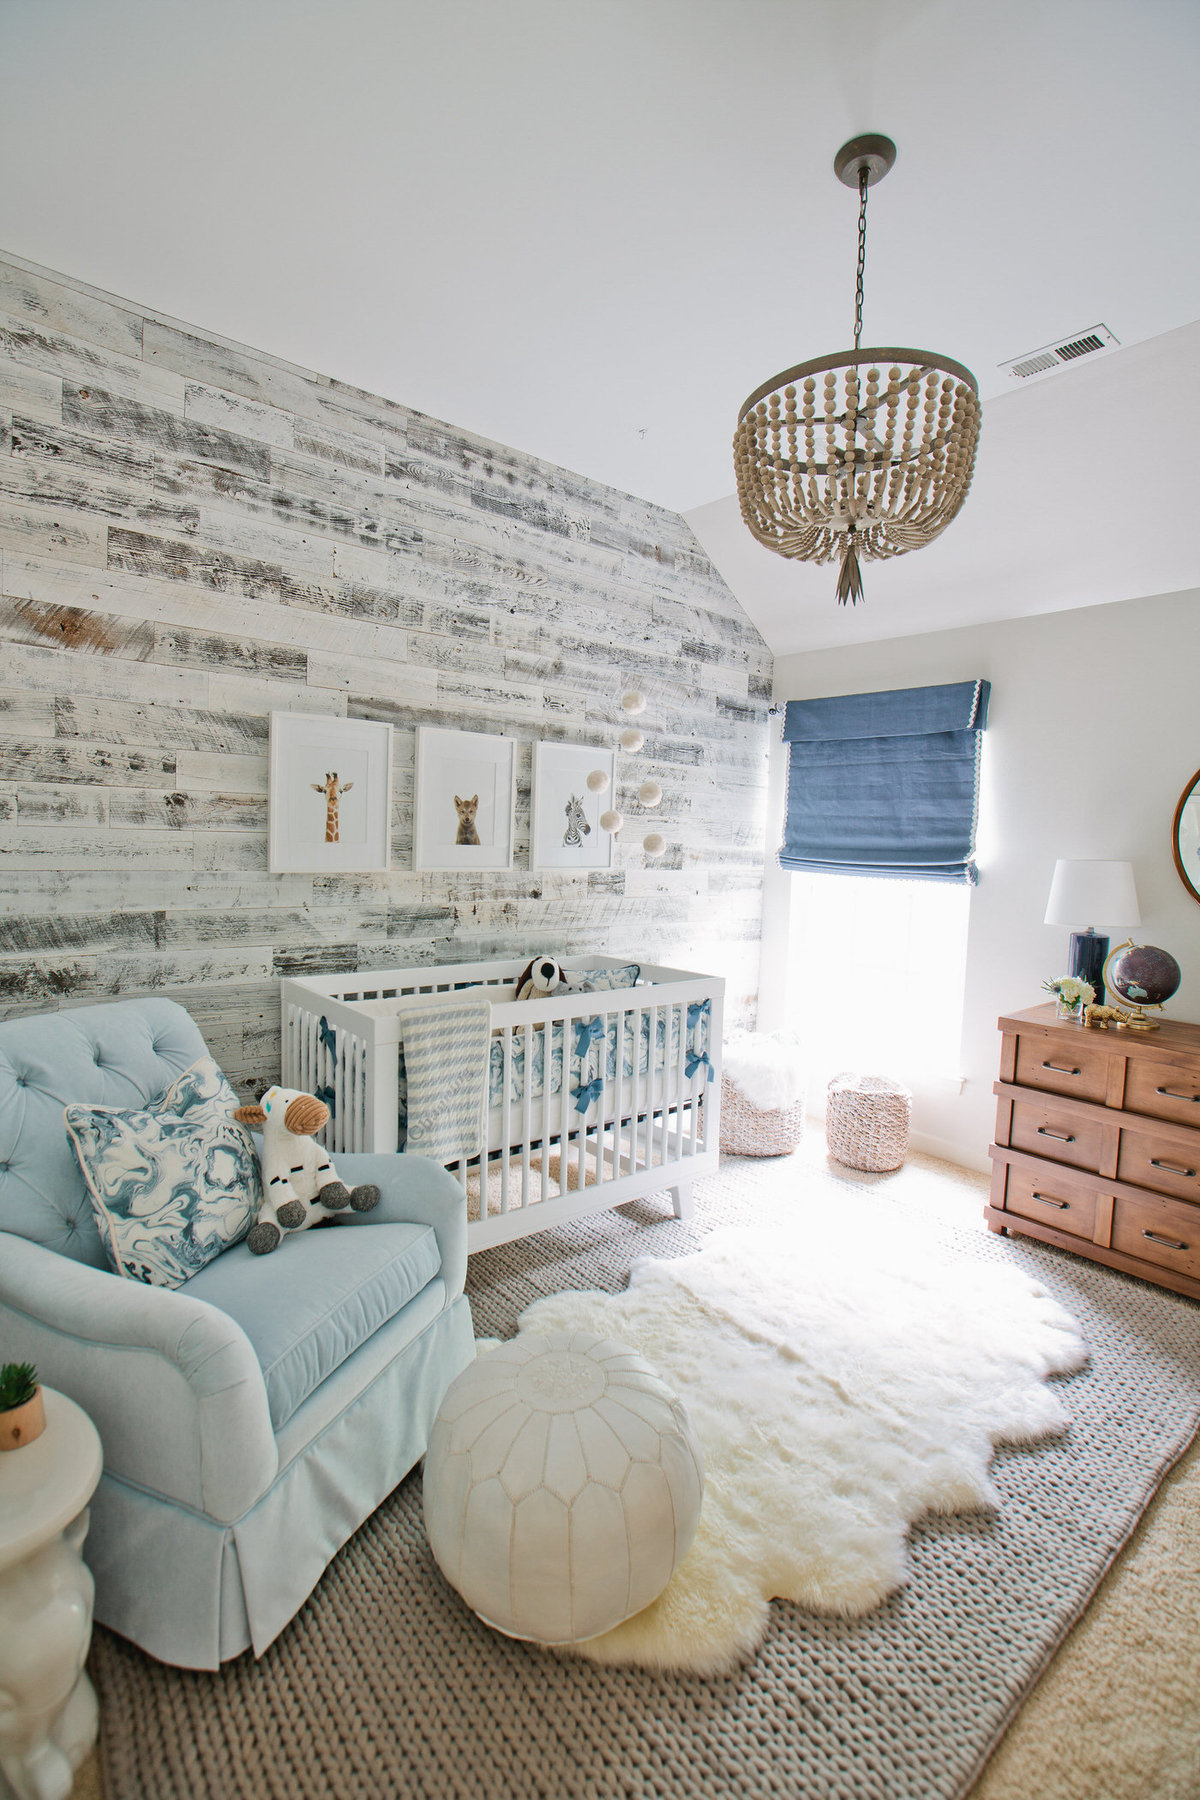 Dominique-DeLaney-Rustic-Boy-Nursery-1